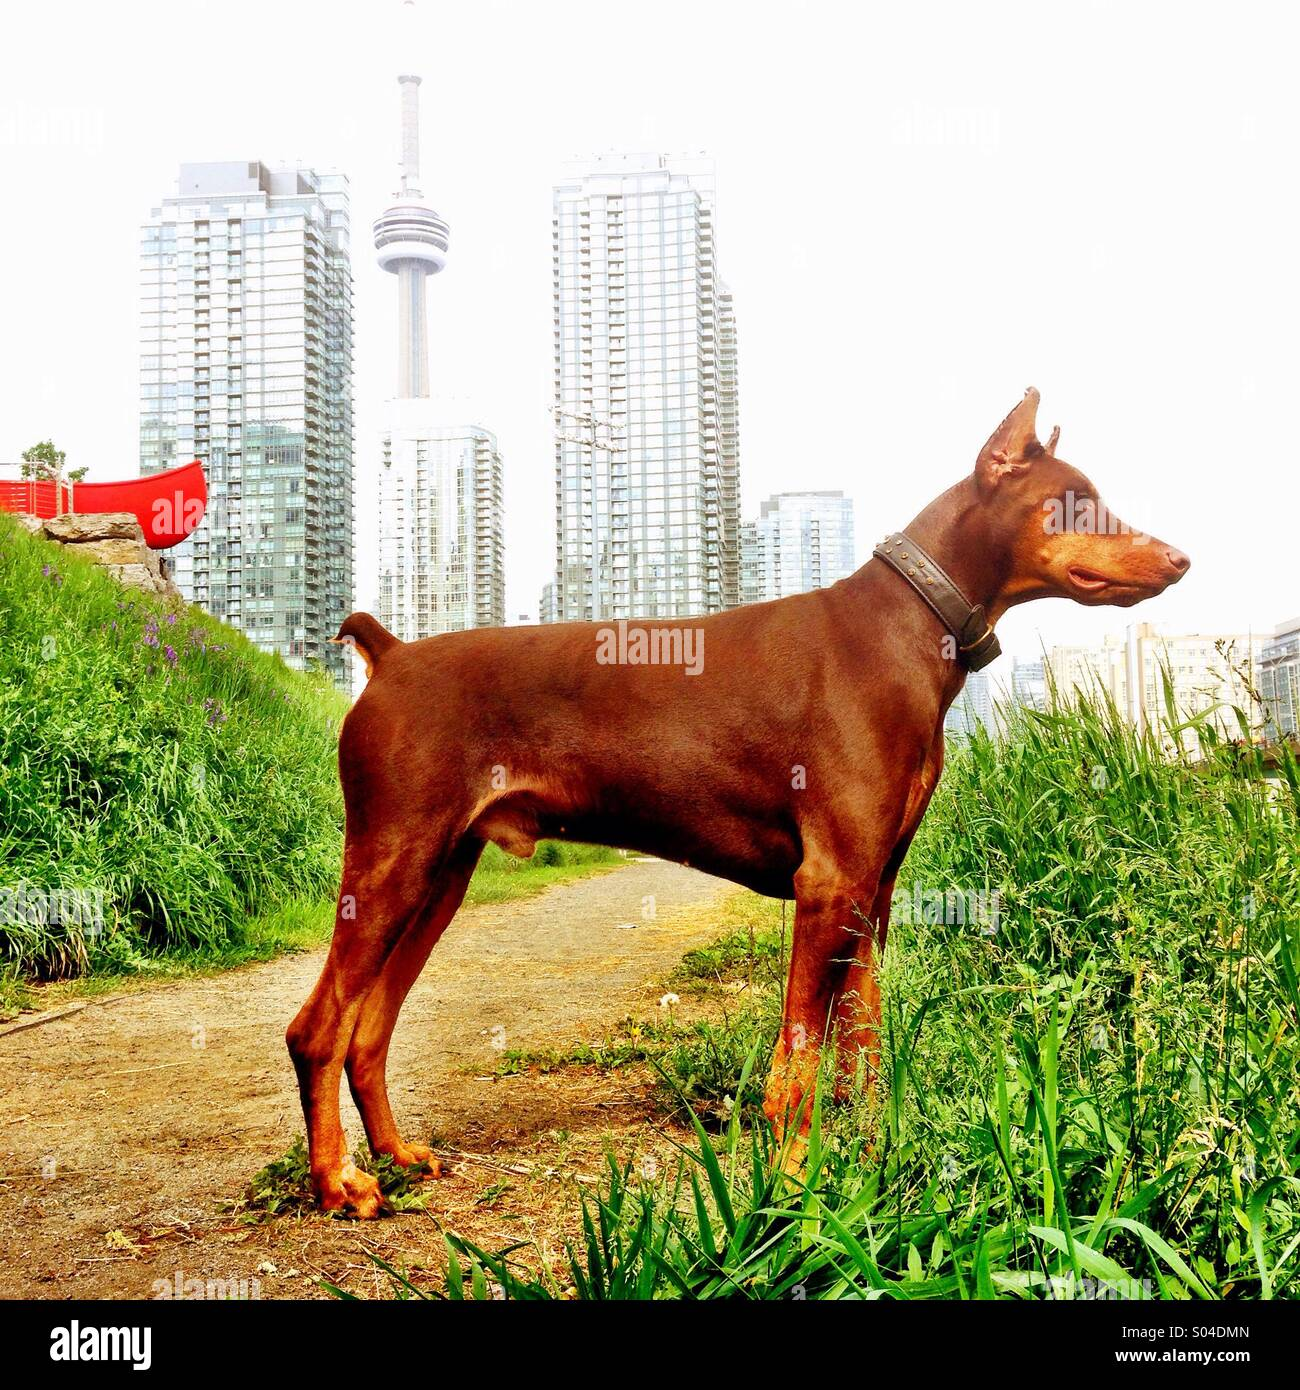 Dog on a hill - Stock Image